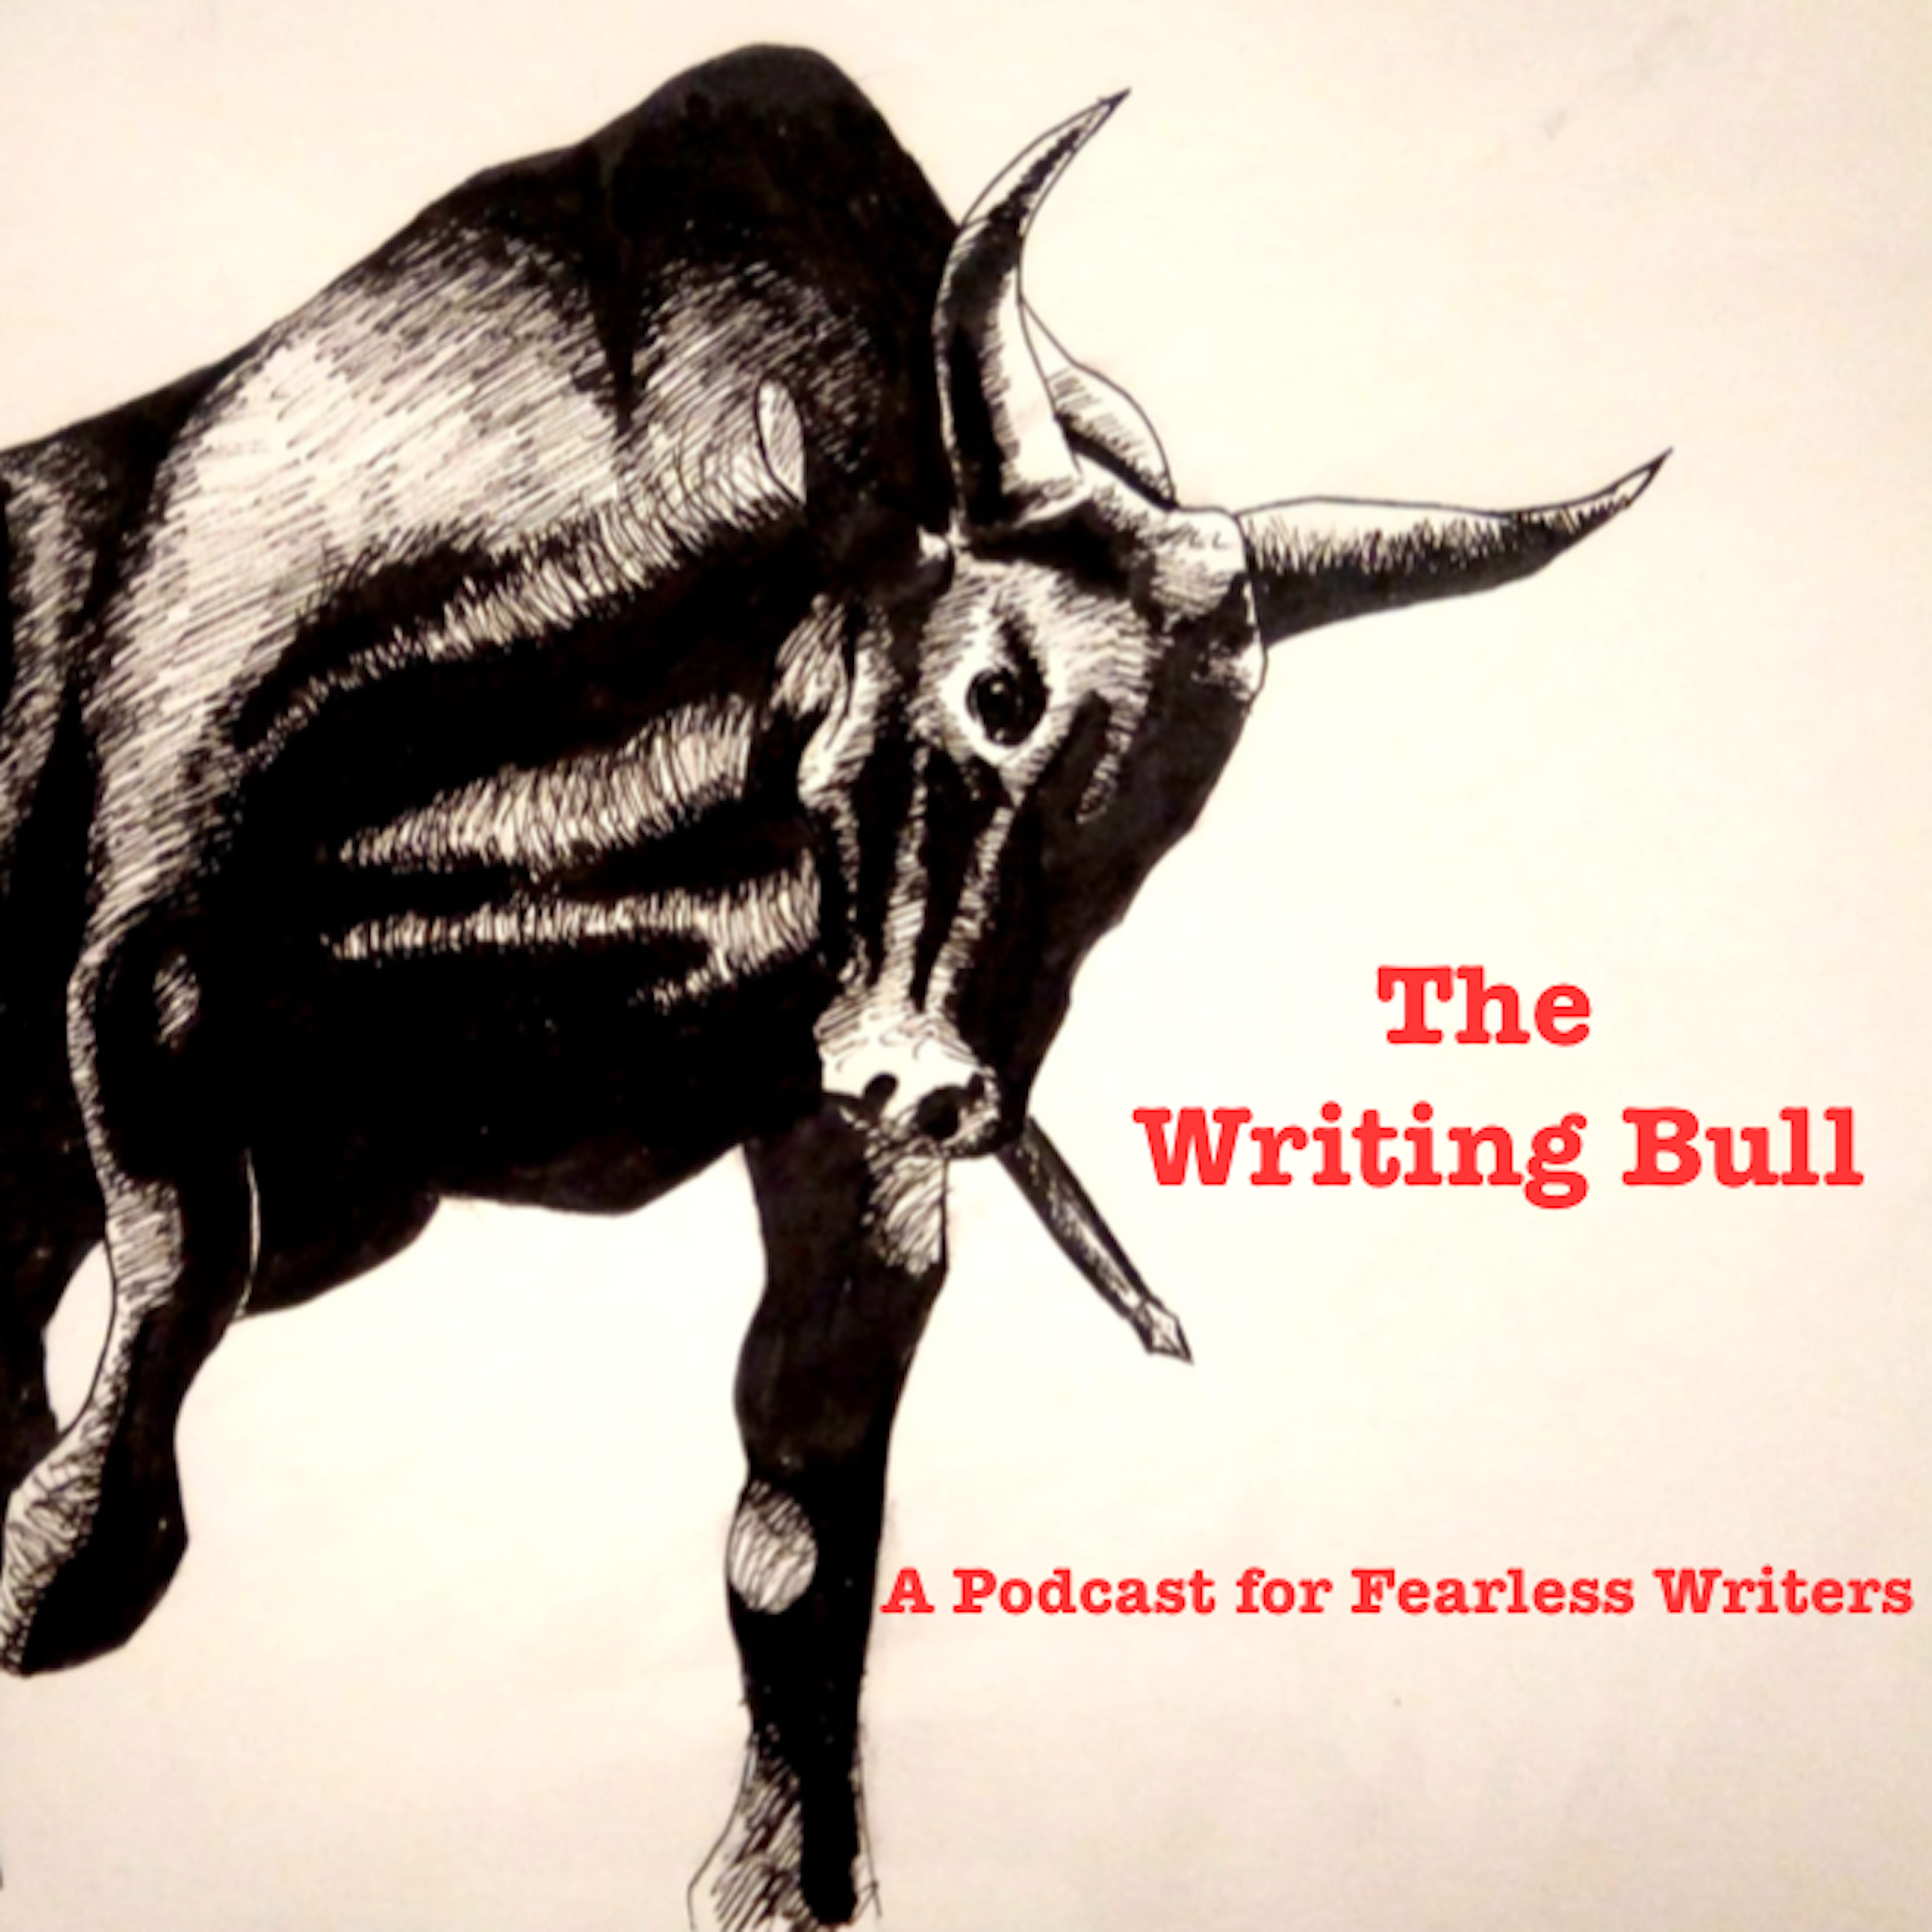 The Writing Bull: a Podcast For Fearless Writers